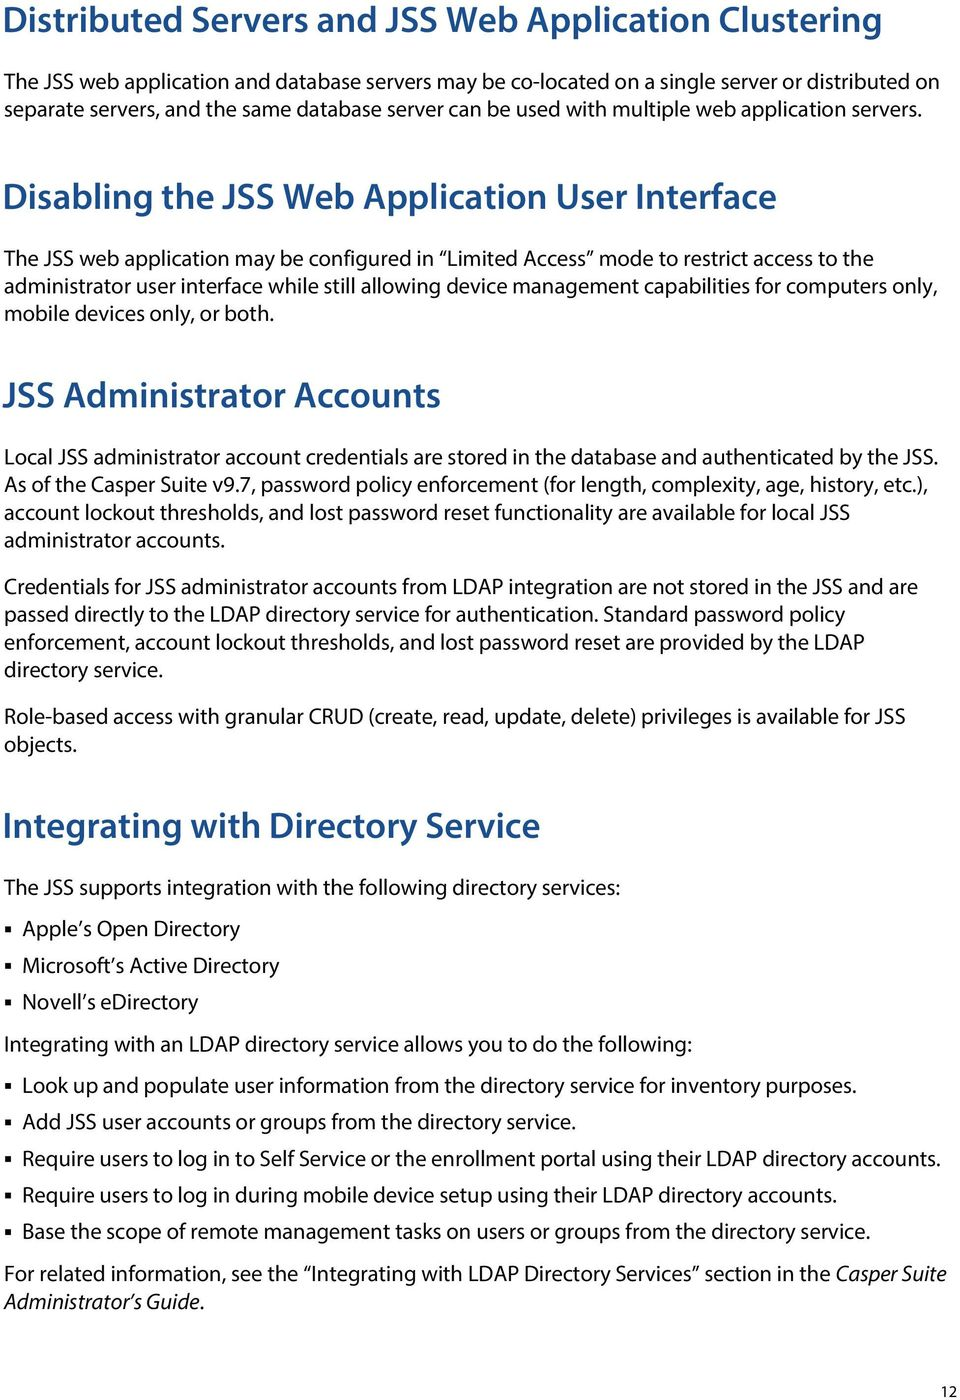 Disabling the JSS Web Application User Interface The JSS web application may be configured in Limited Access mode to restrict access to the administrator user interface while still allowing device